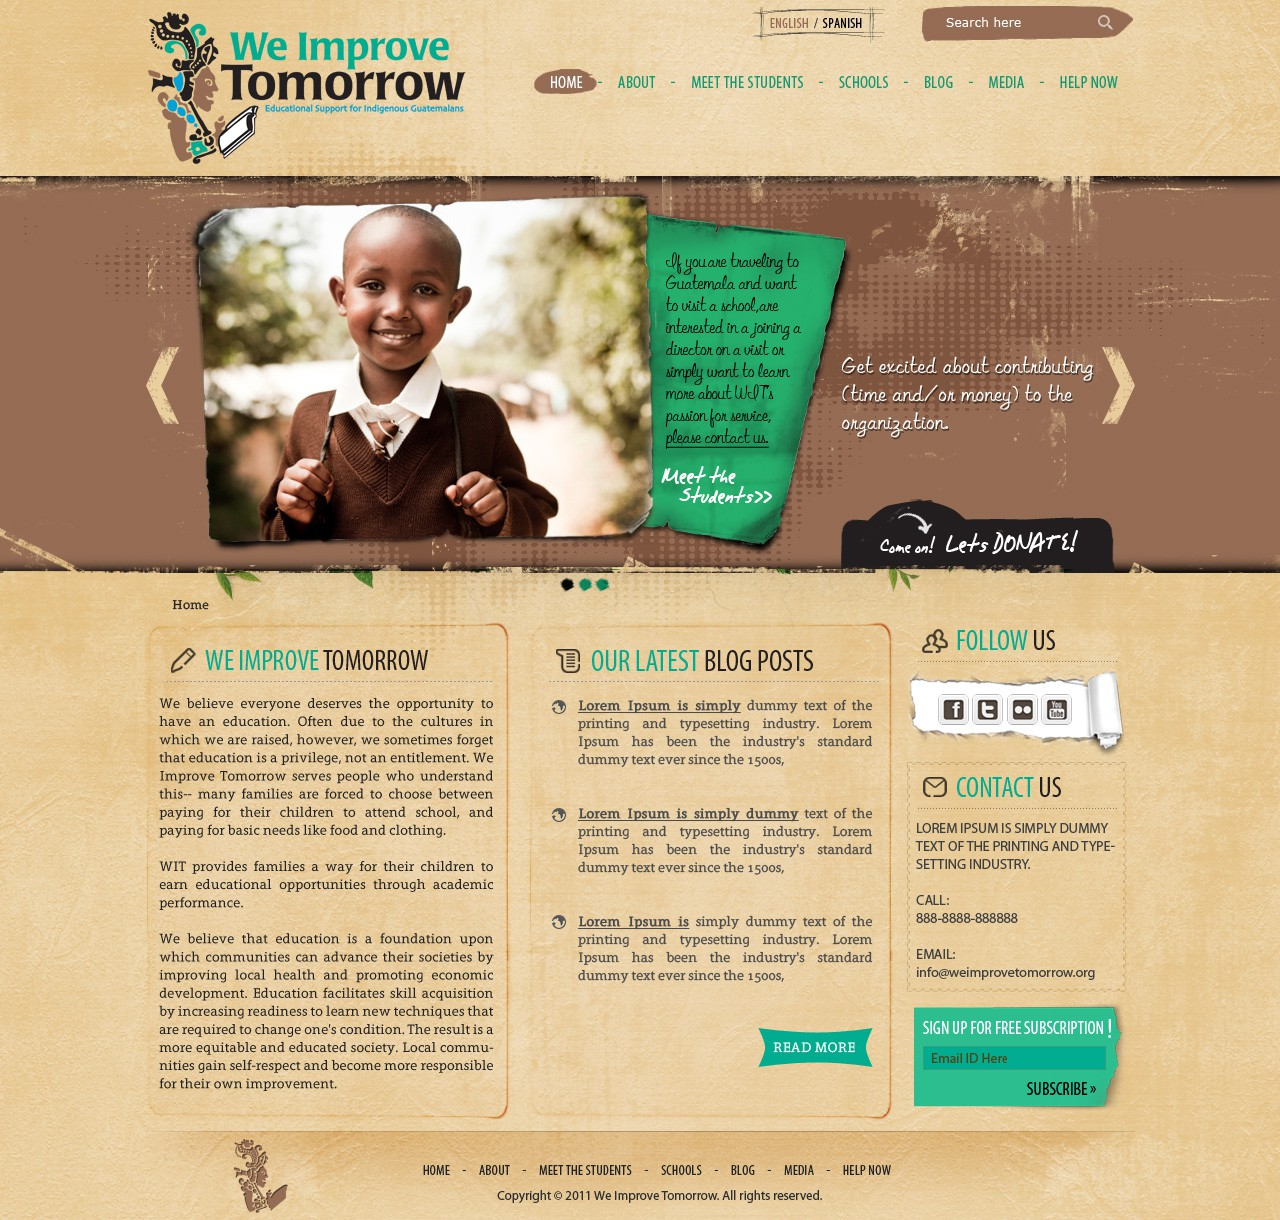 Want to design the next exciting WordPress site to help an education non-profit grow?